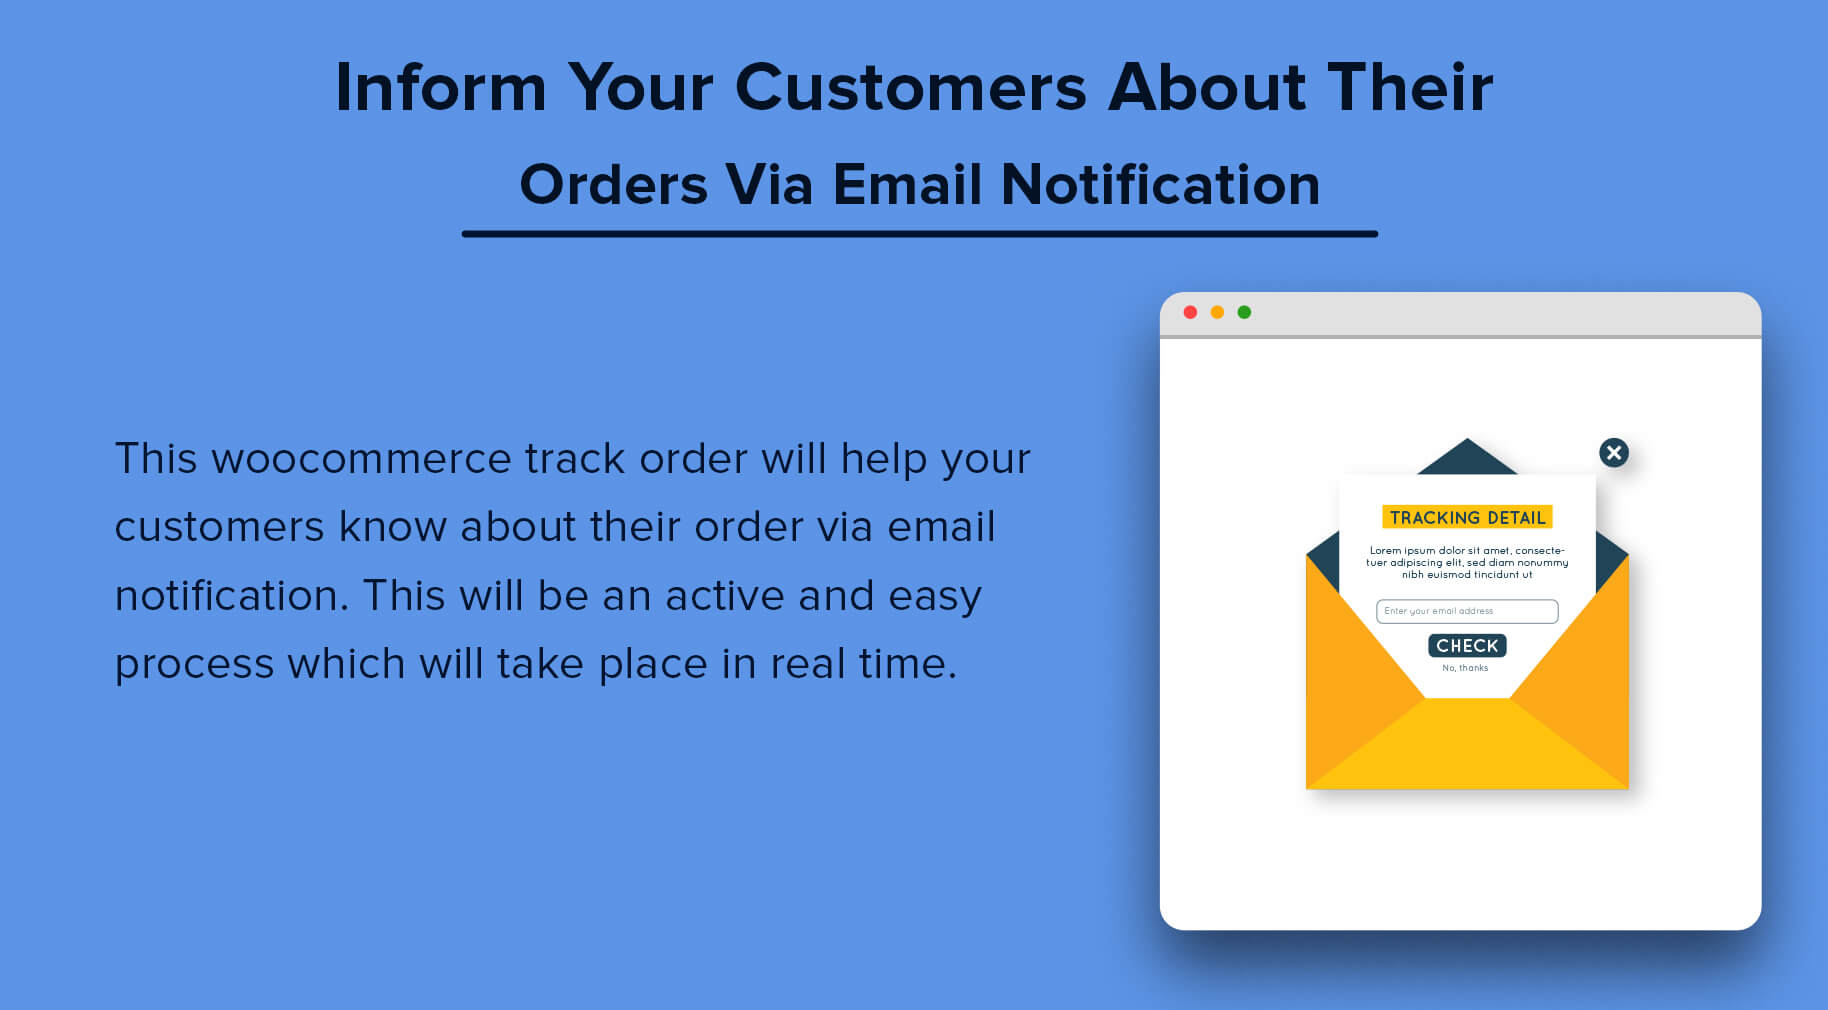 Inform Your Customers About Their Orders Via Email Notification